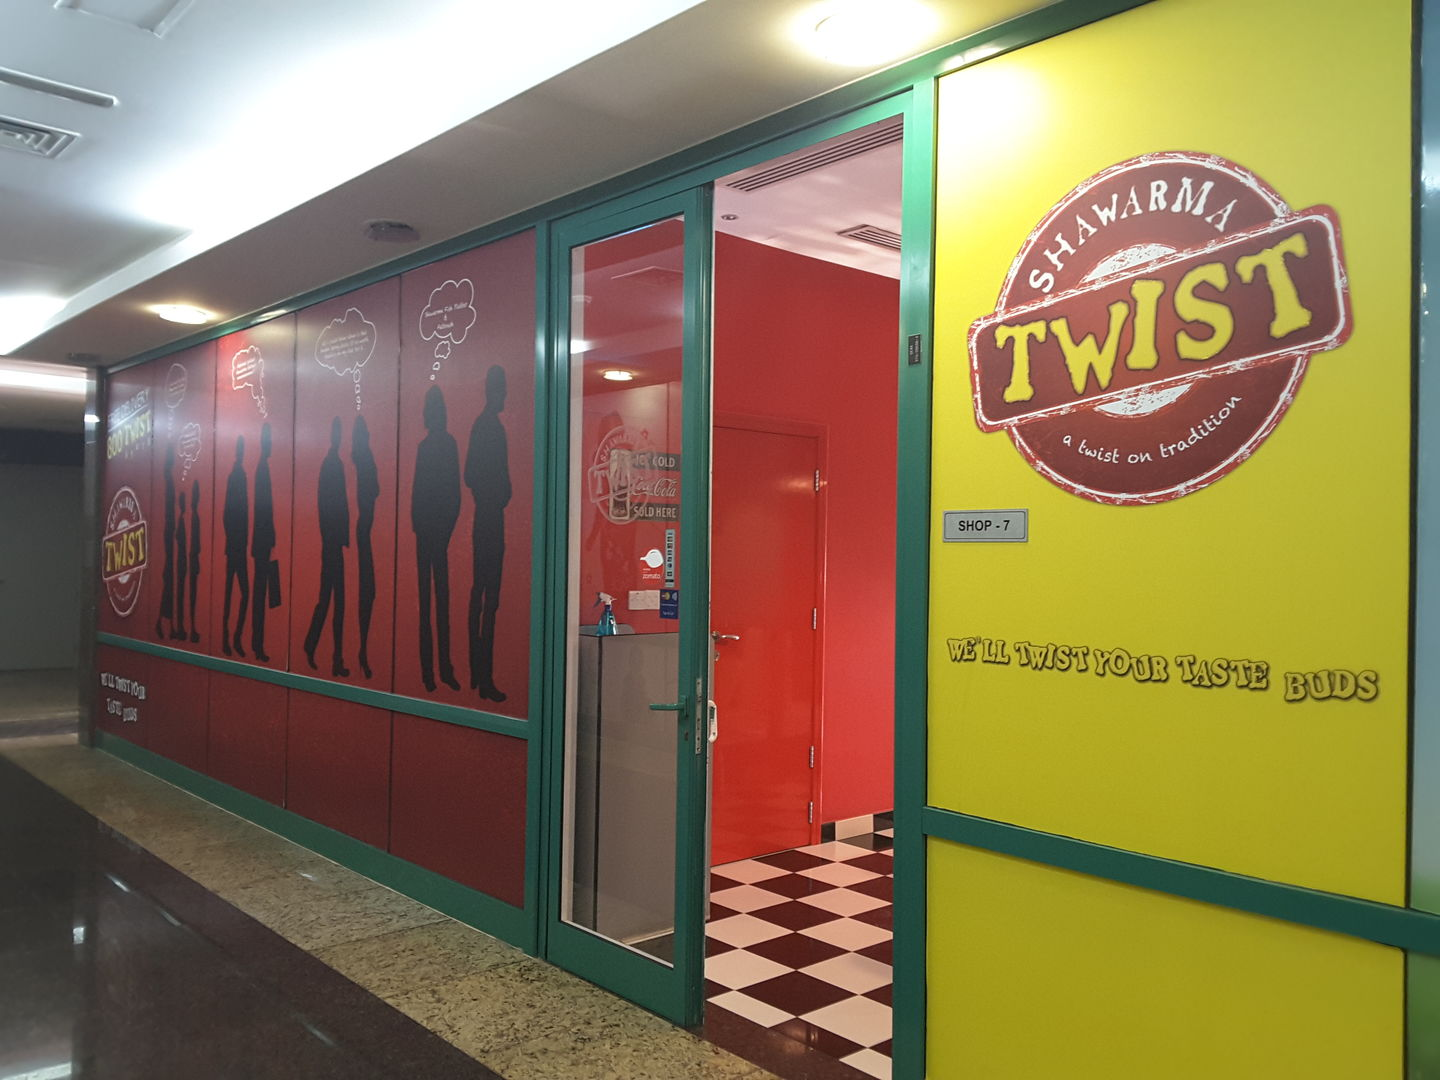 Shawarma Twist, (Restaurants & Bars) in Al Barsha 1, Dubai